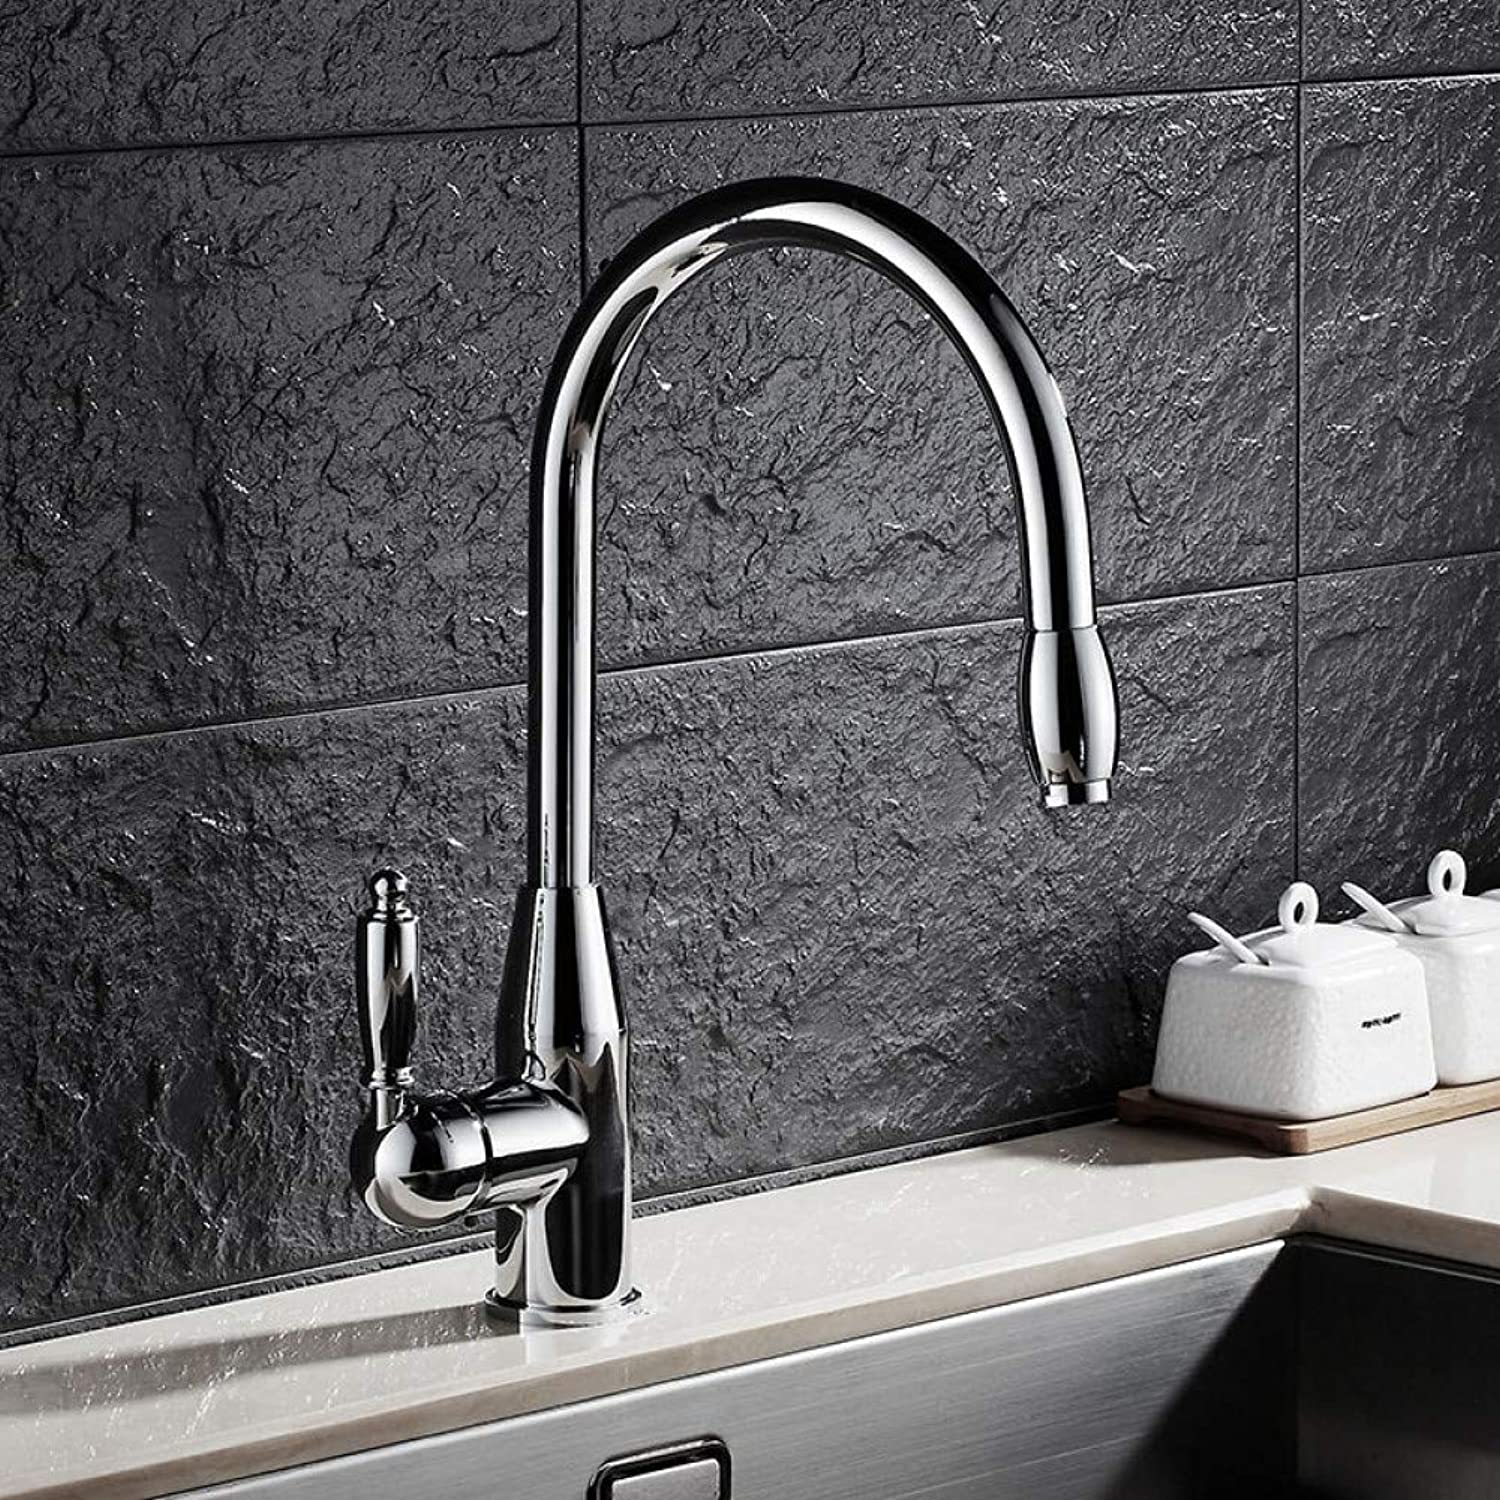 YHSGY Kitchen Taps Copper Wash Basin Faucet redating Hot and Cold Kitchen Sink Faucet